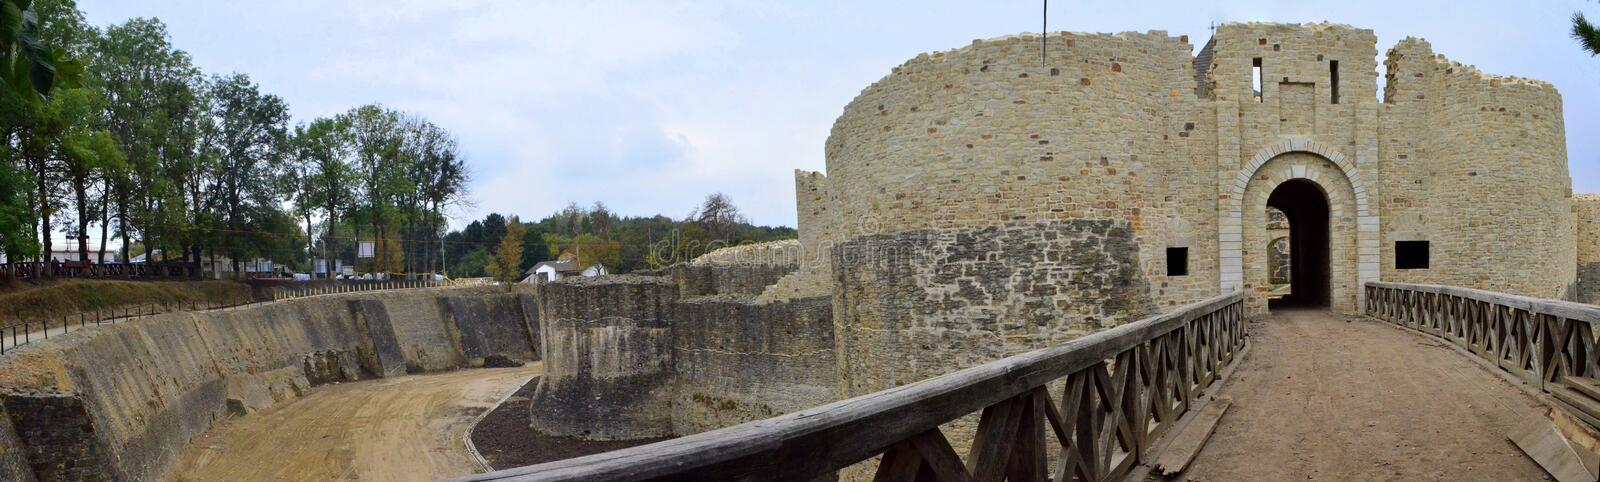 Entrance into the Suceava fortress - Romania. Image of Suceava's fortress ruins, a romanian landmark built by Stefan cel Mare - entrance through a wooden bridge royalty free stock images